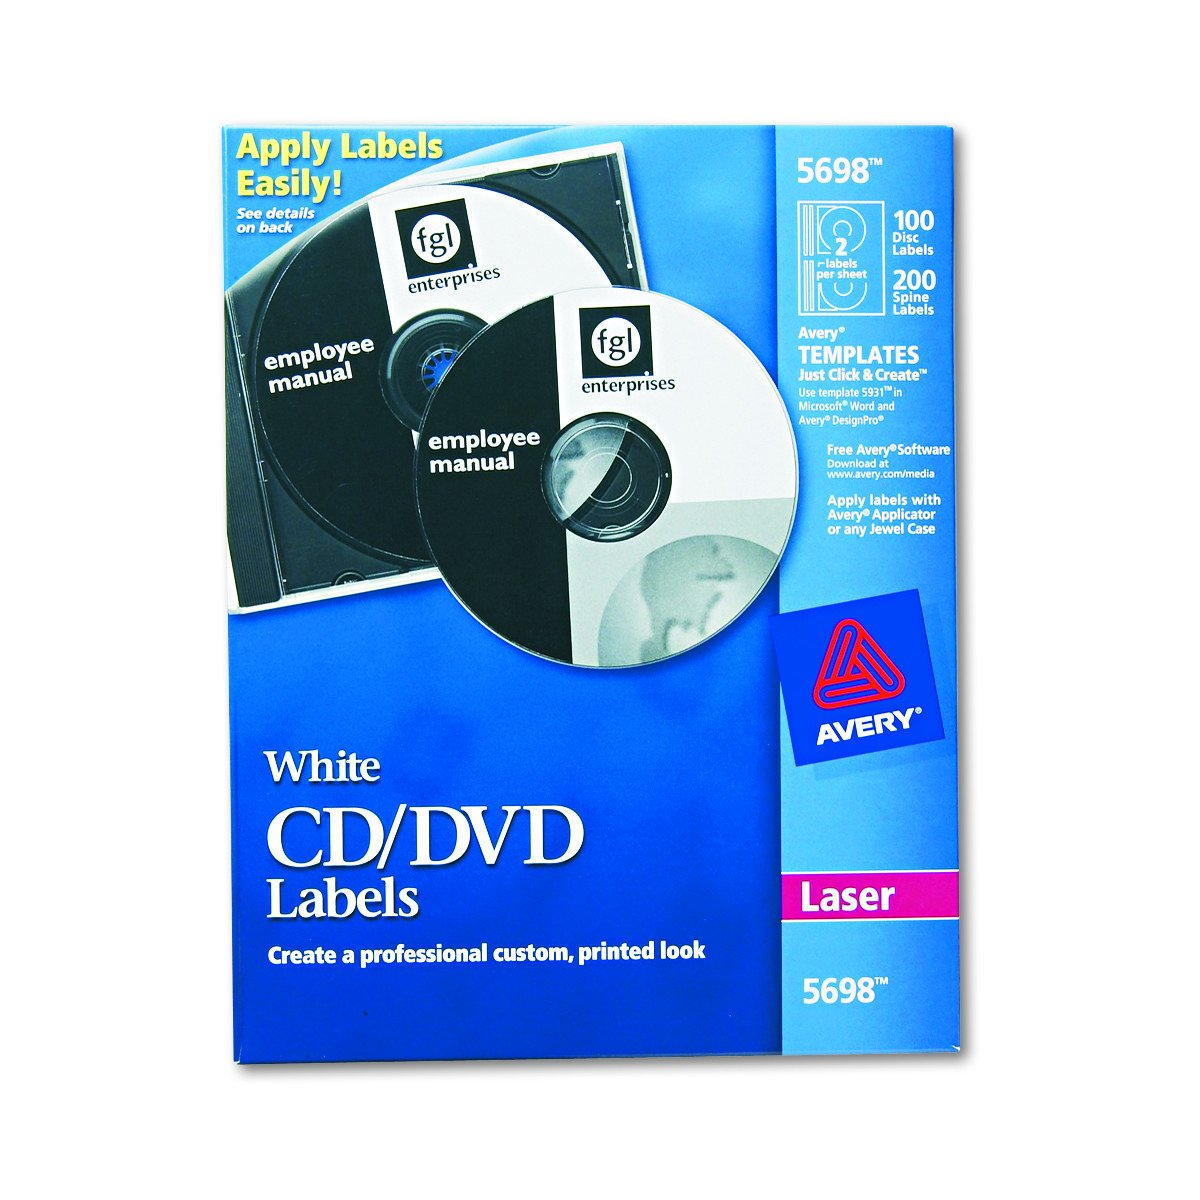 Amazon avery cd labels for laser printers white 100 disc amazon avery cd labels for laser printers white 100 disc labels and 200 spine labels 5698 all purpose labels office products pronofoot35fo Choice Image